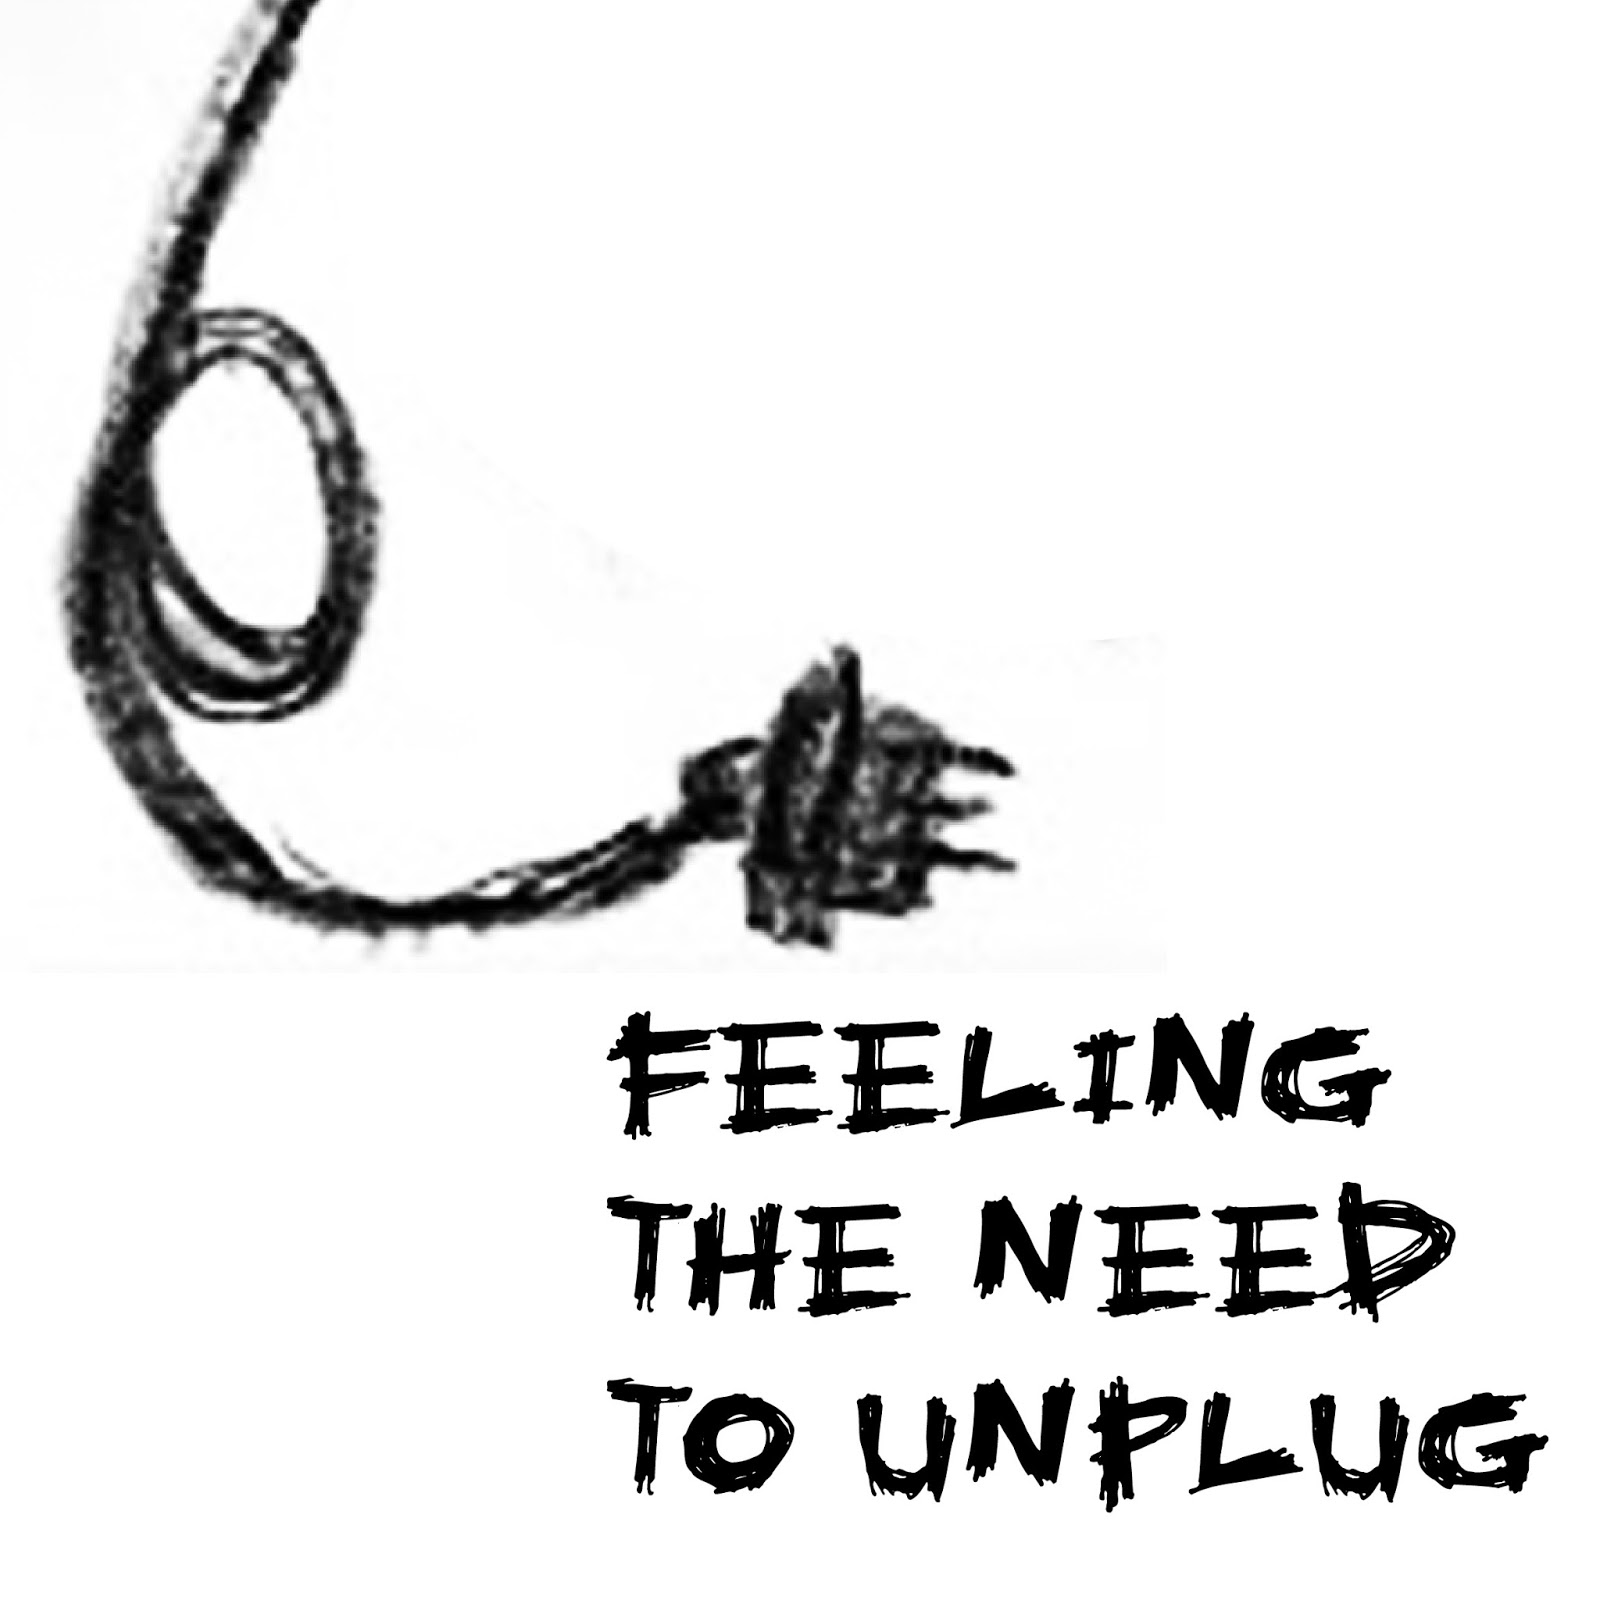 discussing social media  is it time to unplug from social